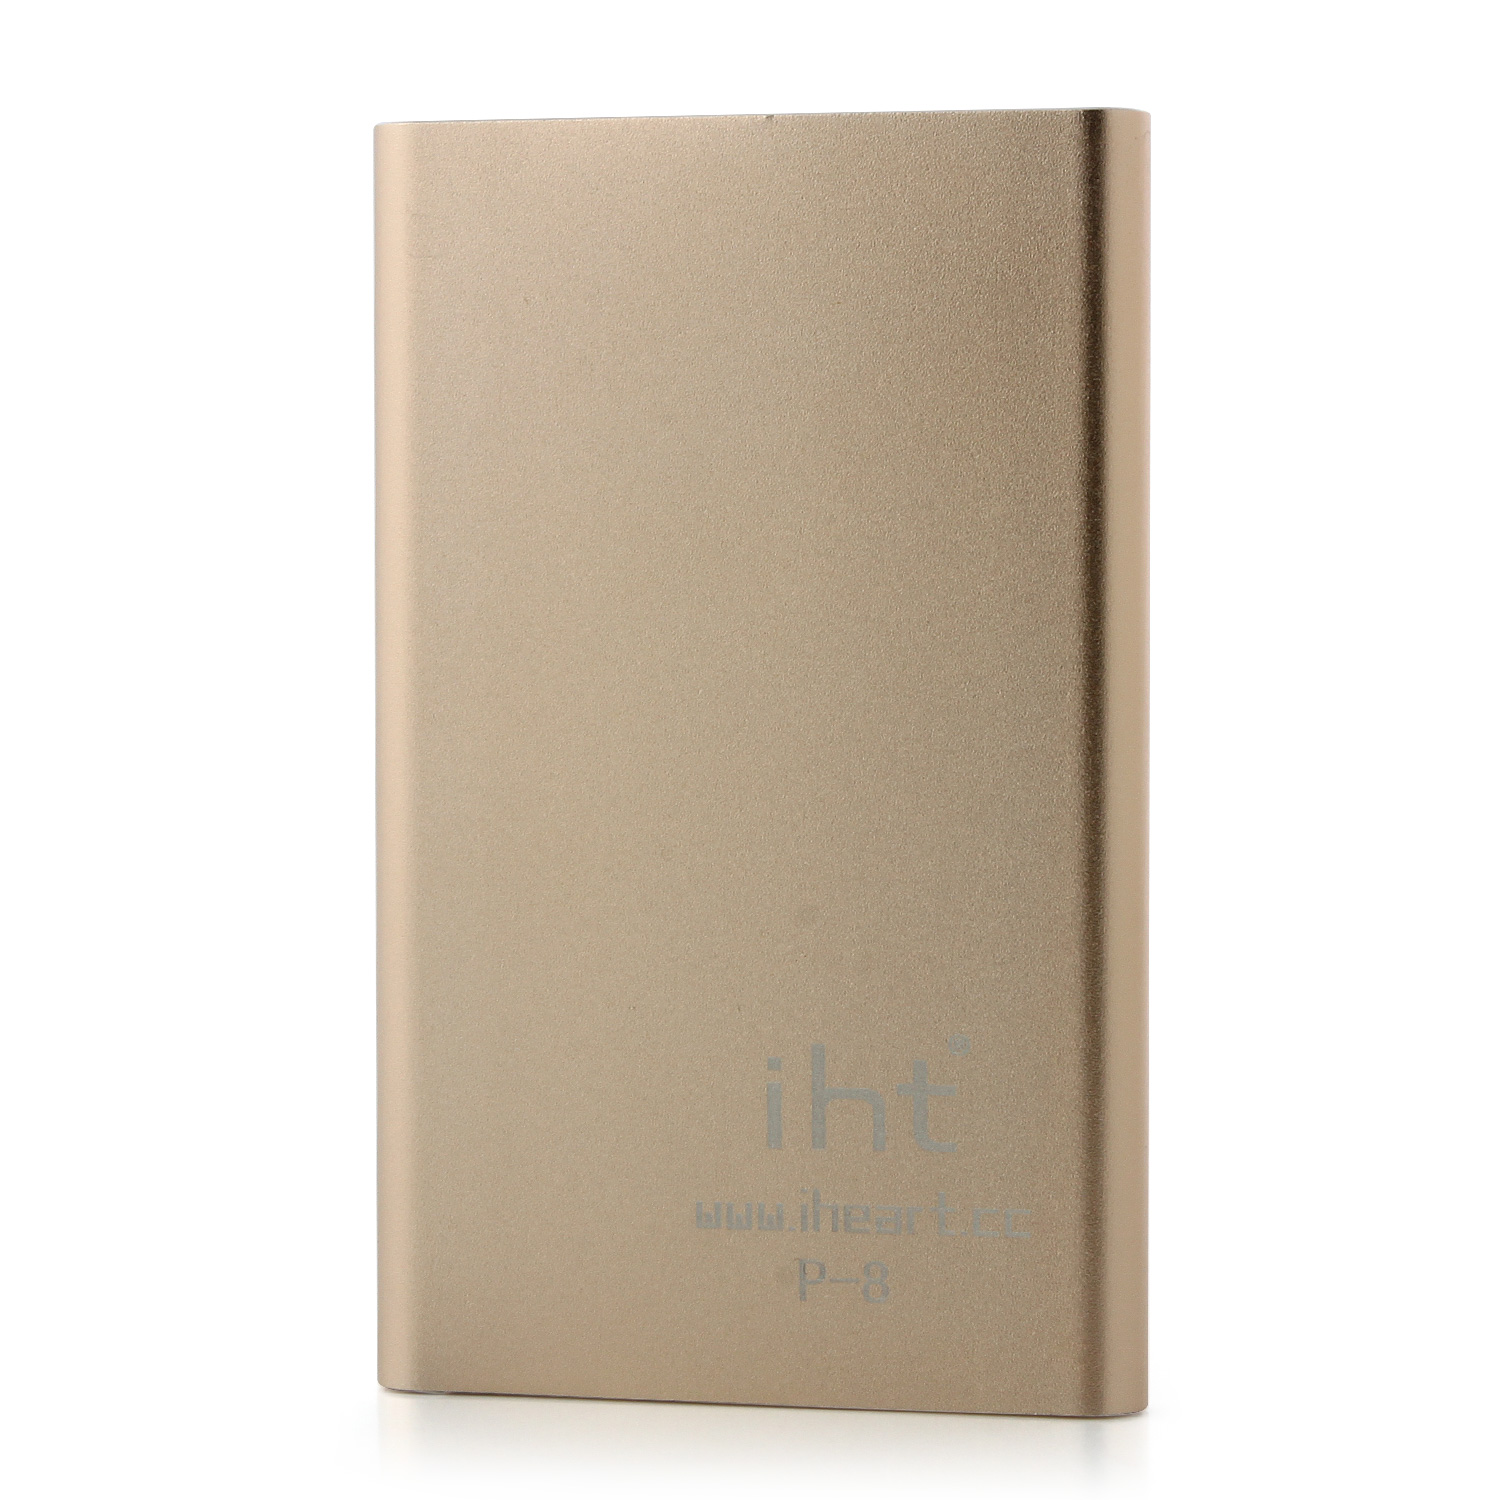 IHT P-8 8000mAh High Capacity Power Bank for Smartphone Tablet PC Gold